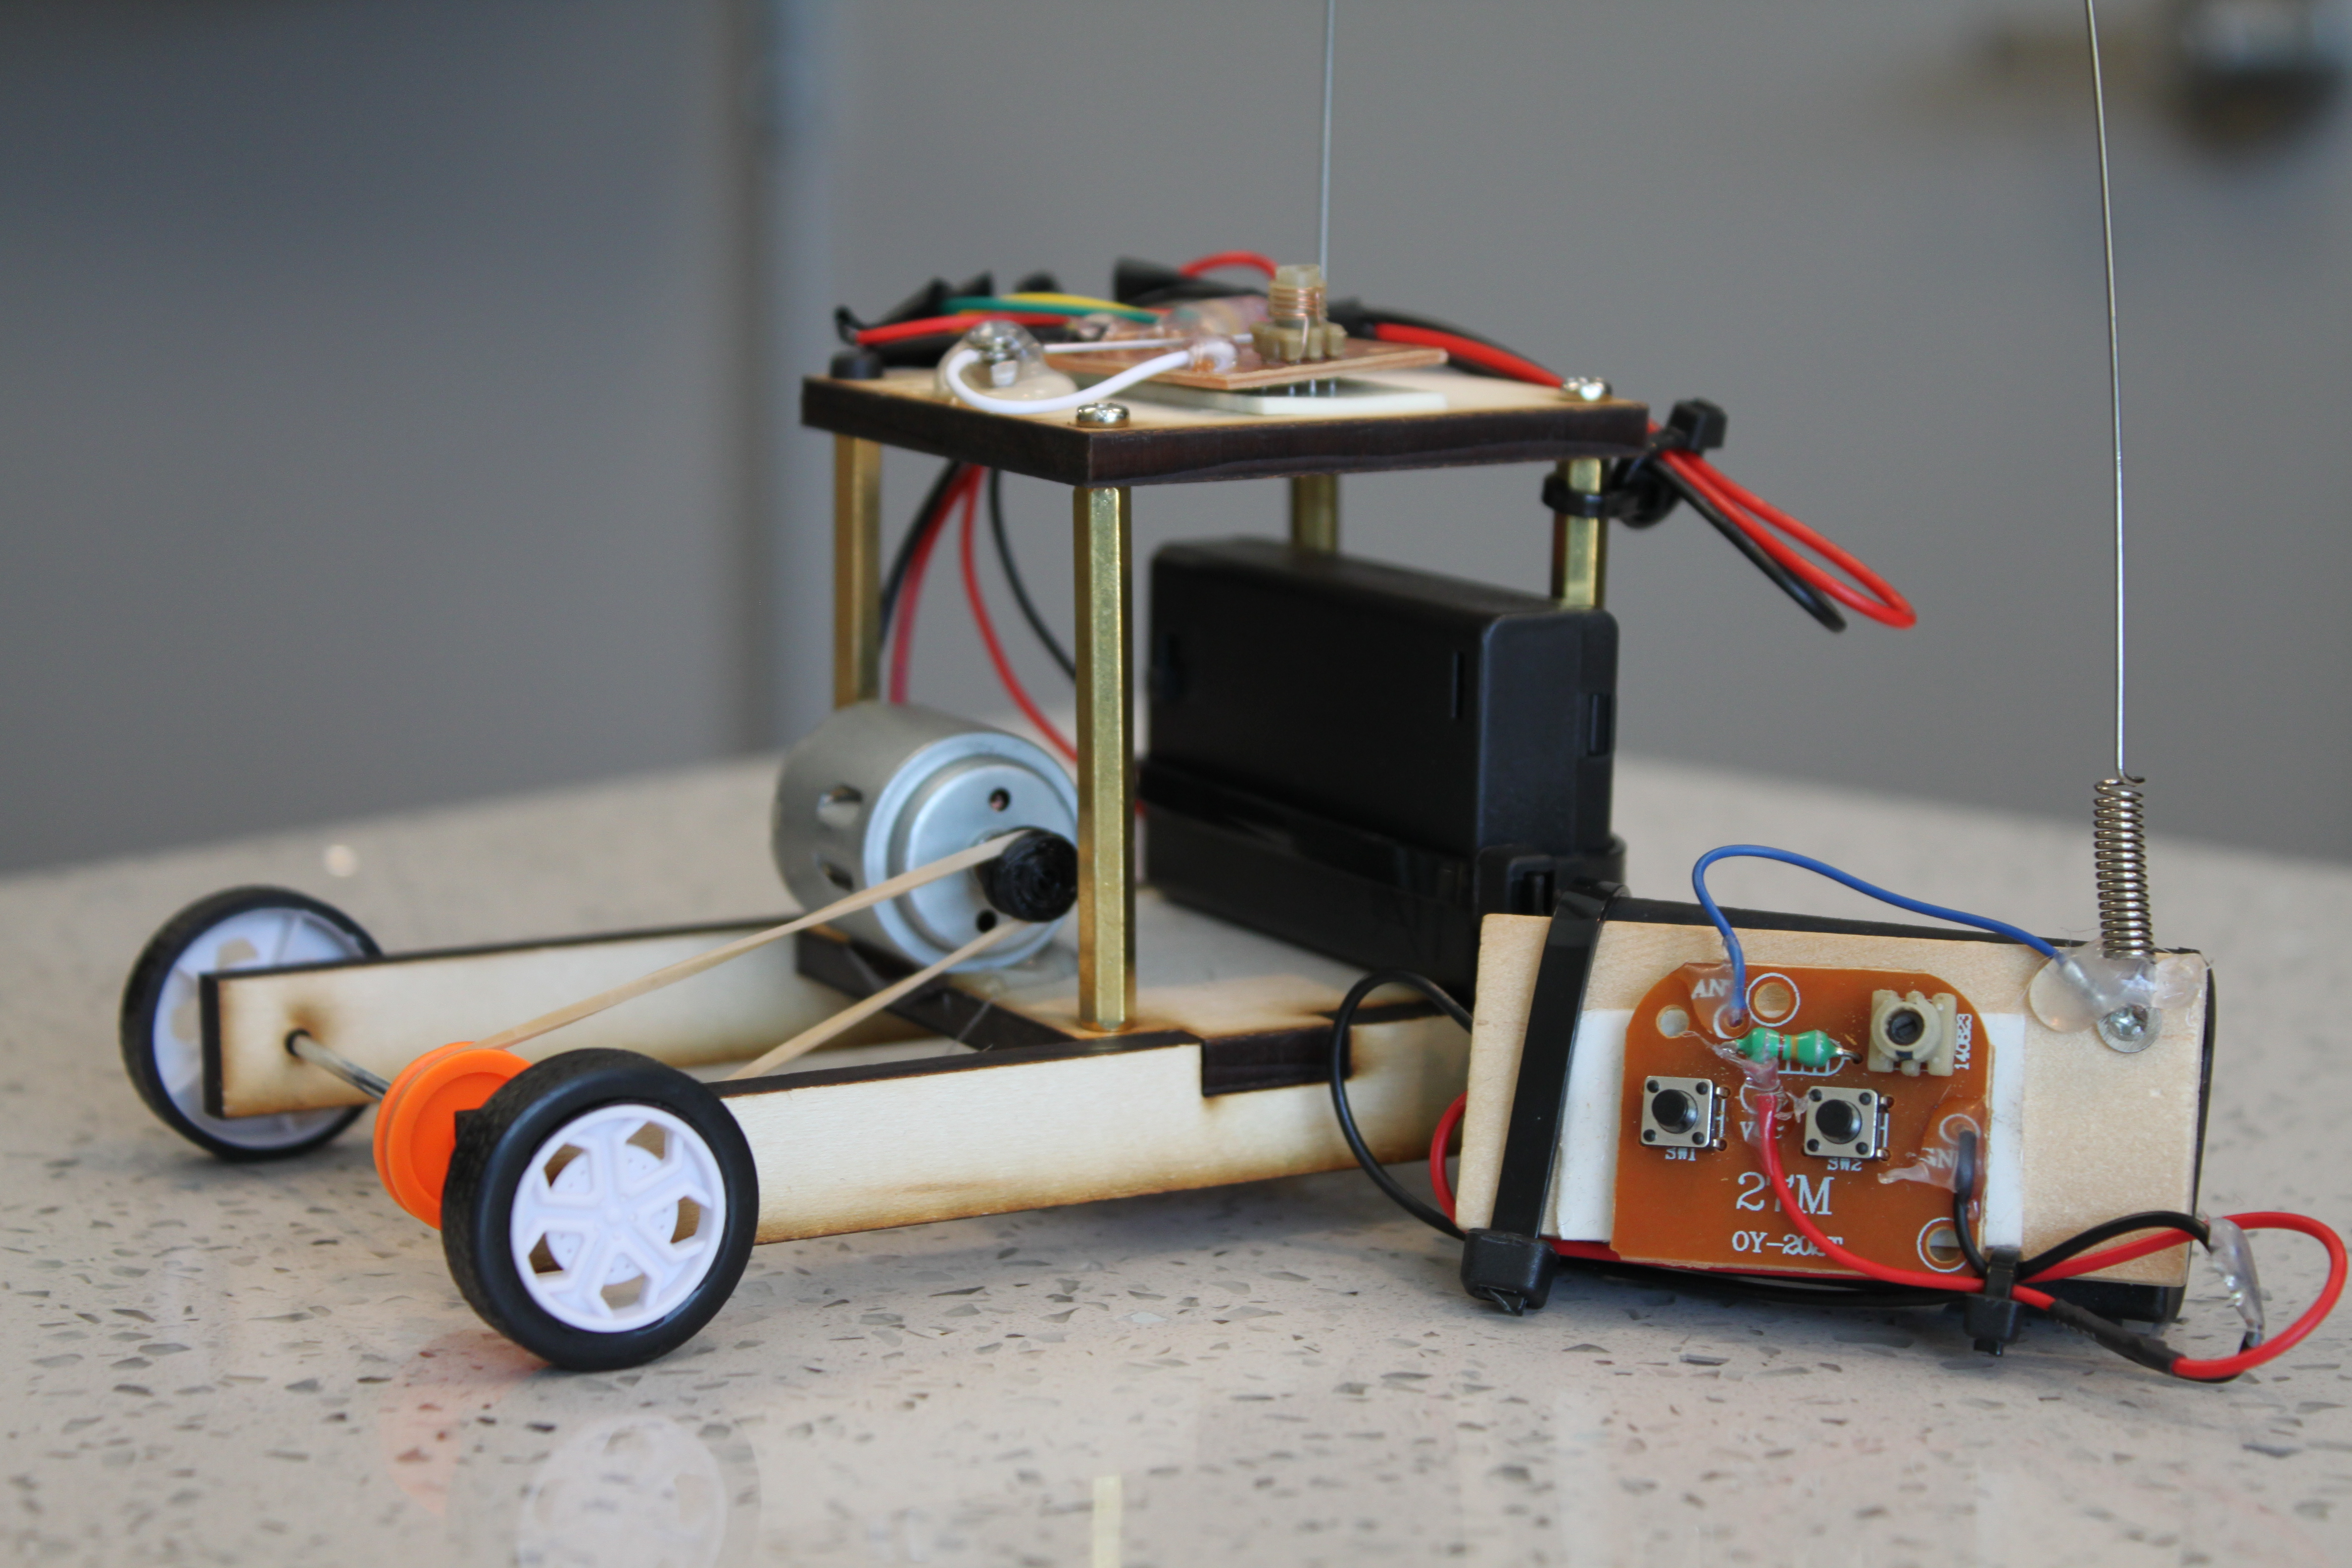 Homeschool Classes Innoved Learning Basic Electrical Wiring Programming Soldering And Debugging Skills To Create Your Own Customized Gadgets Including A Remote Controlled Car Go From Circuits